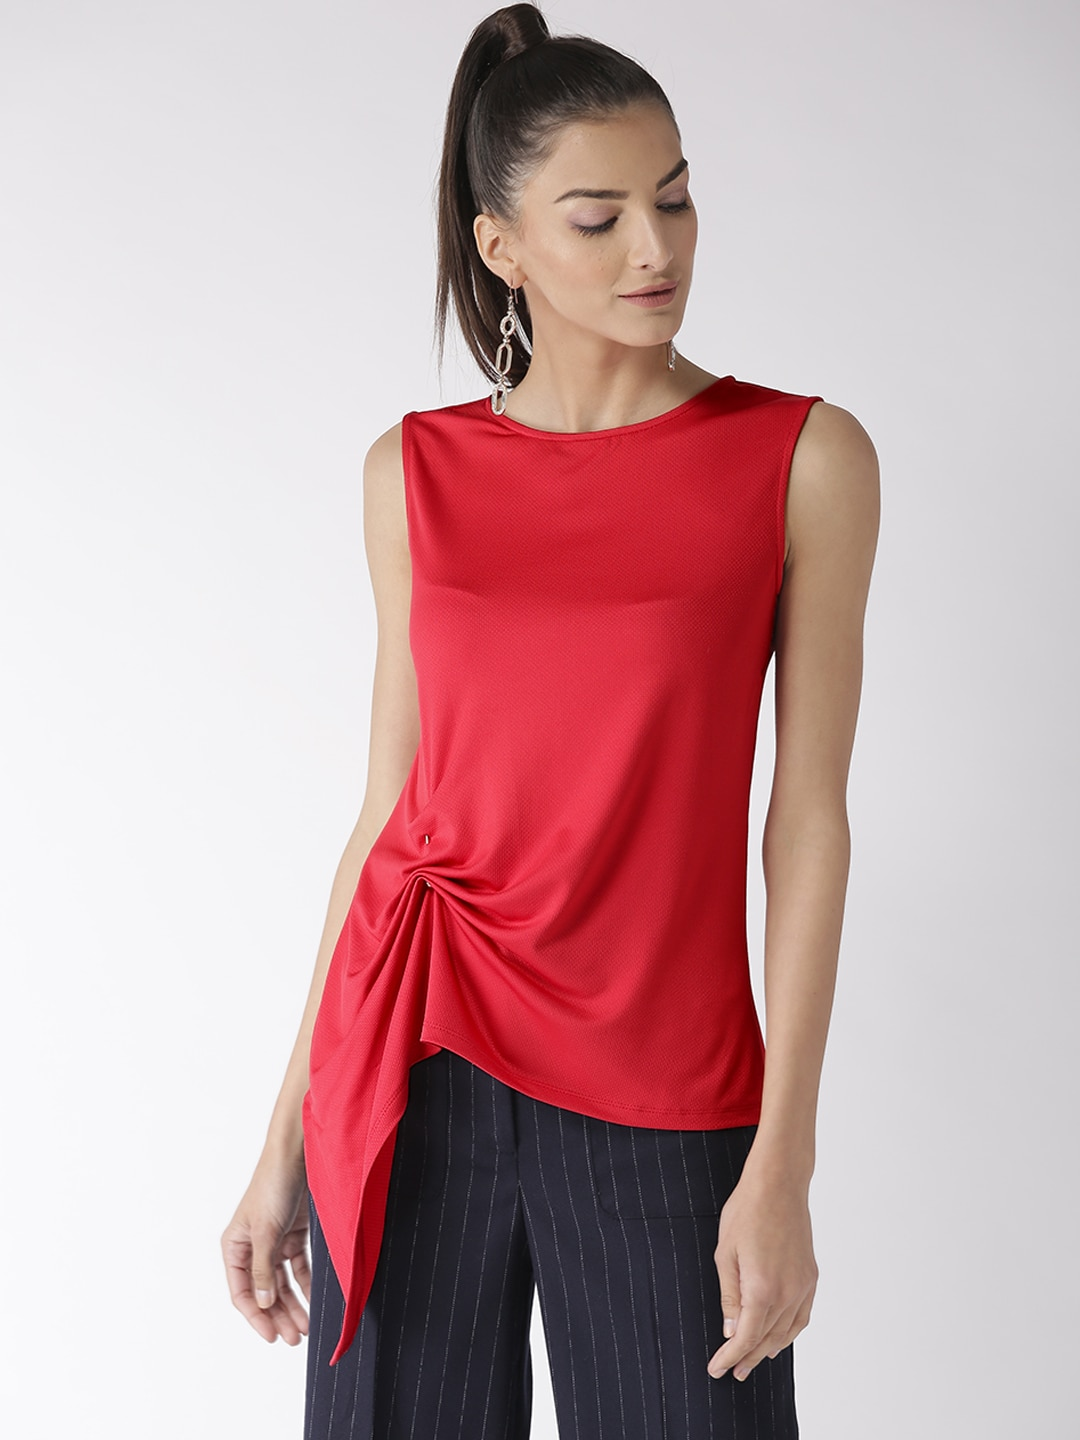 4b1e7a2bb9b84b Madame Tops - Buy Madame Top for Women Online in India